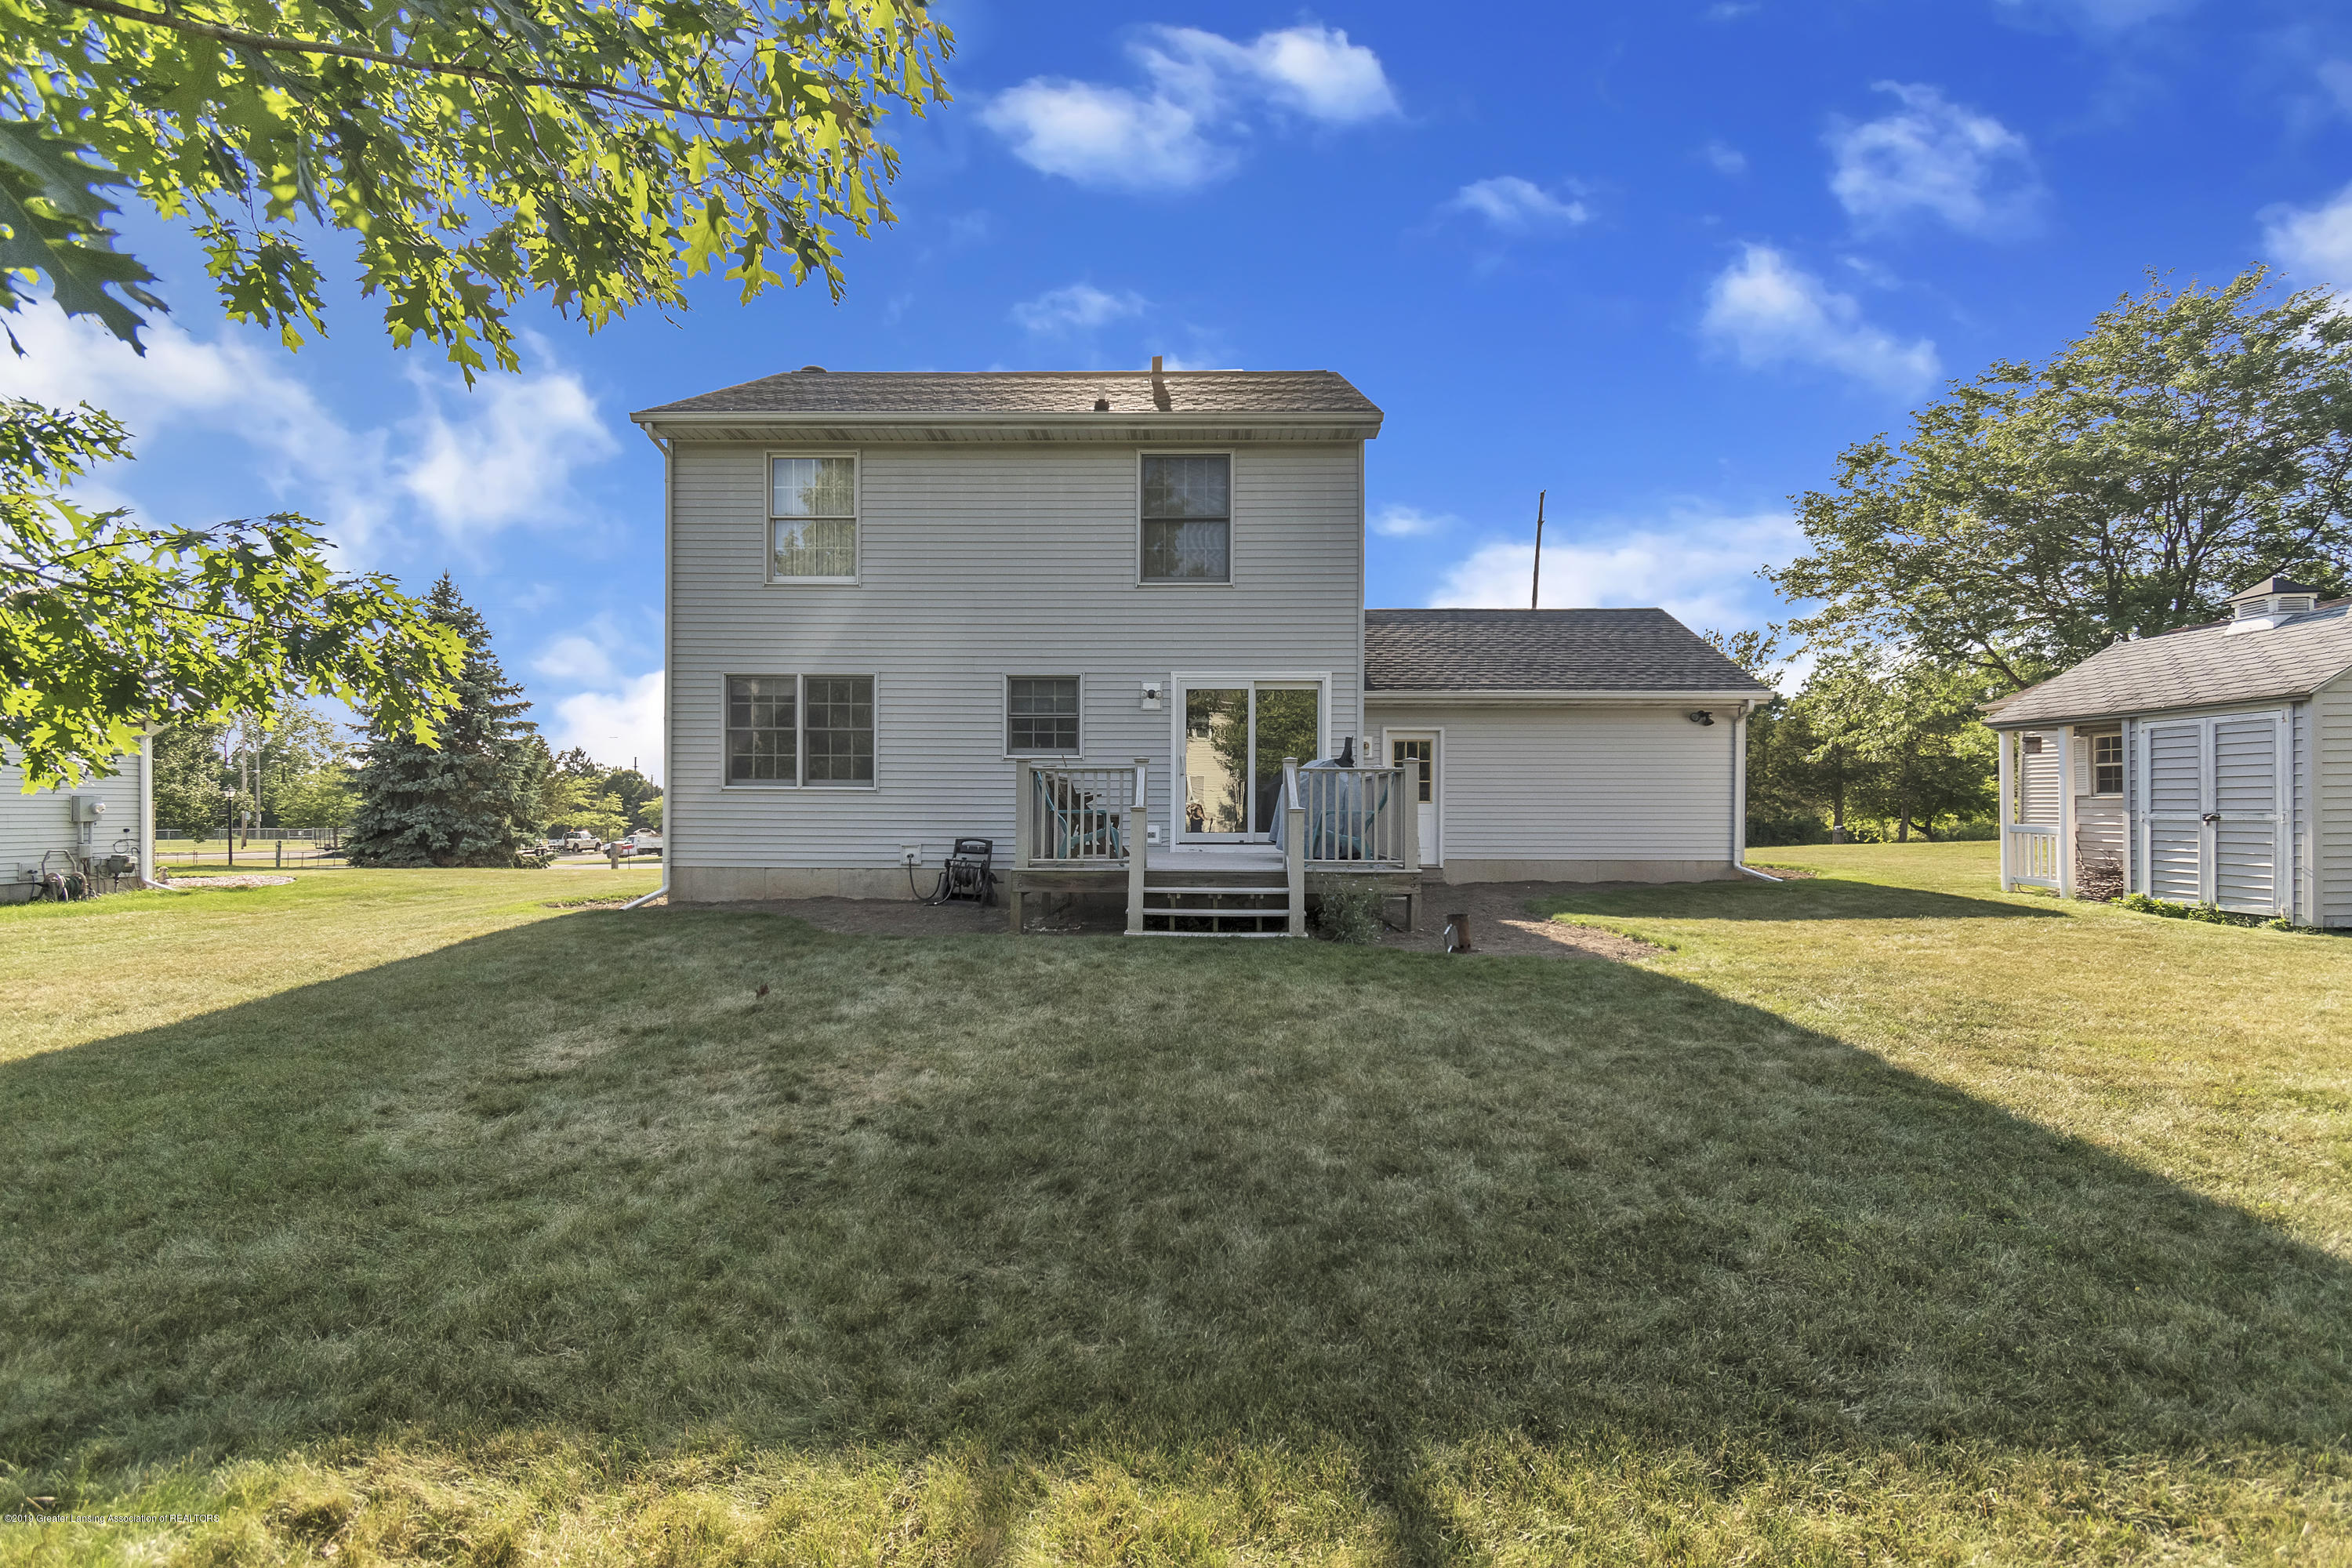 2350 Pine Tree Rd - 2350-Pine-Tree-Rd-Holt-MI-windowstill-38 - 40